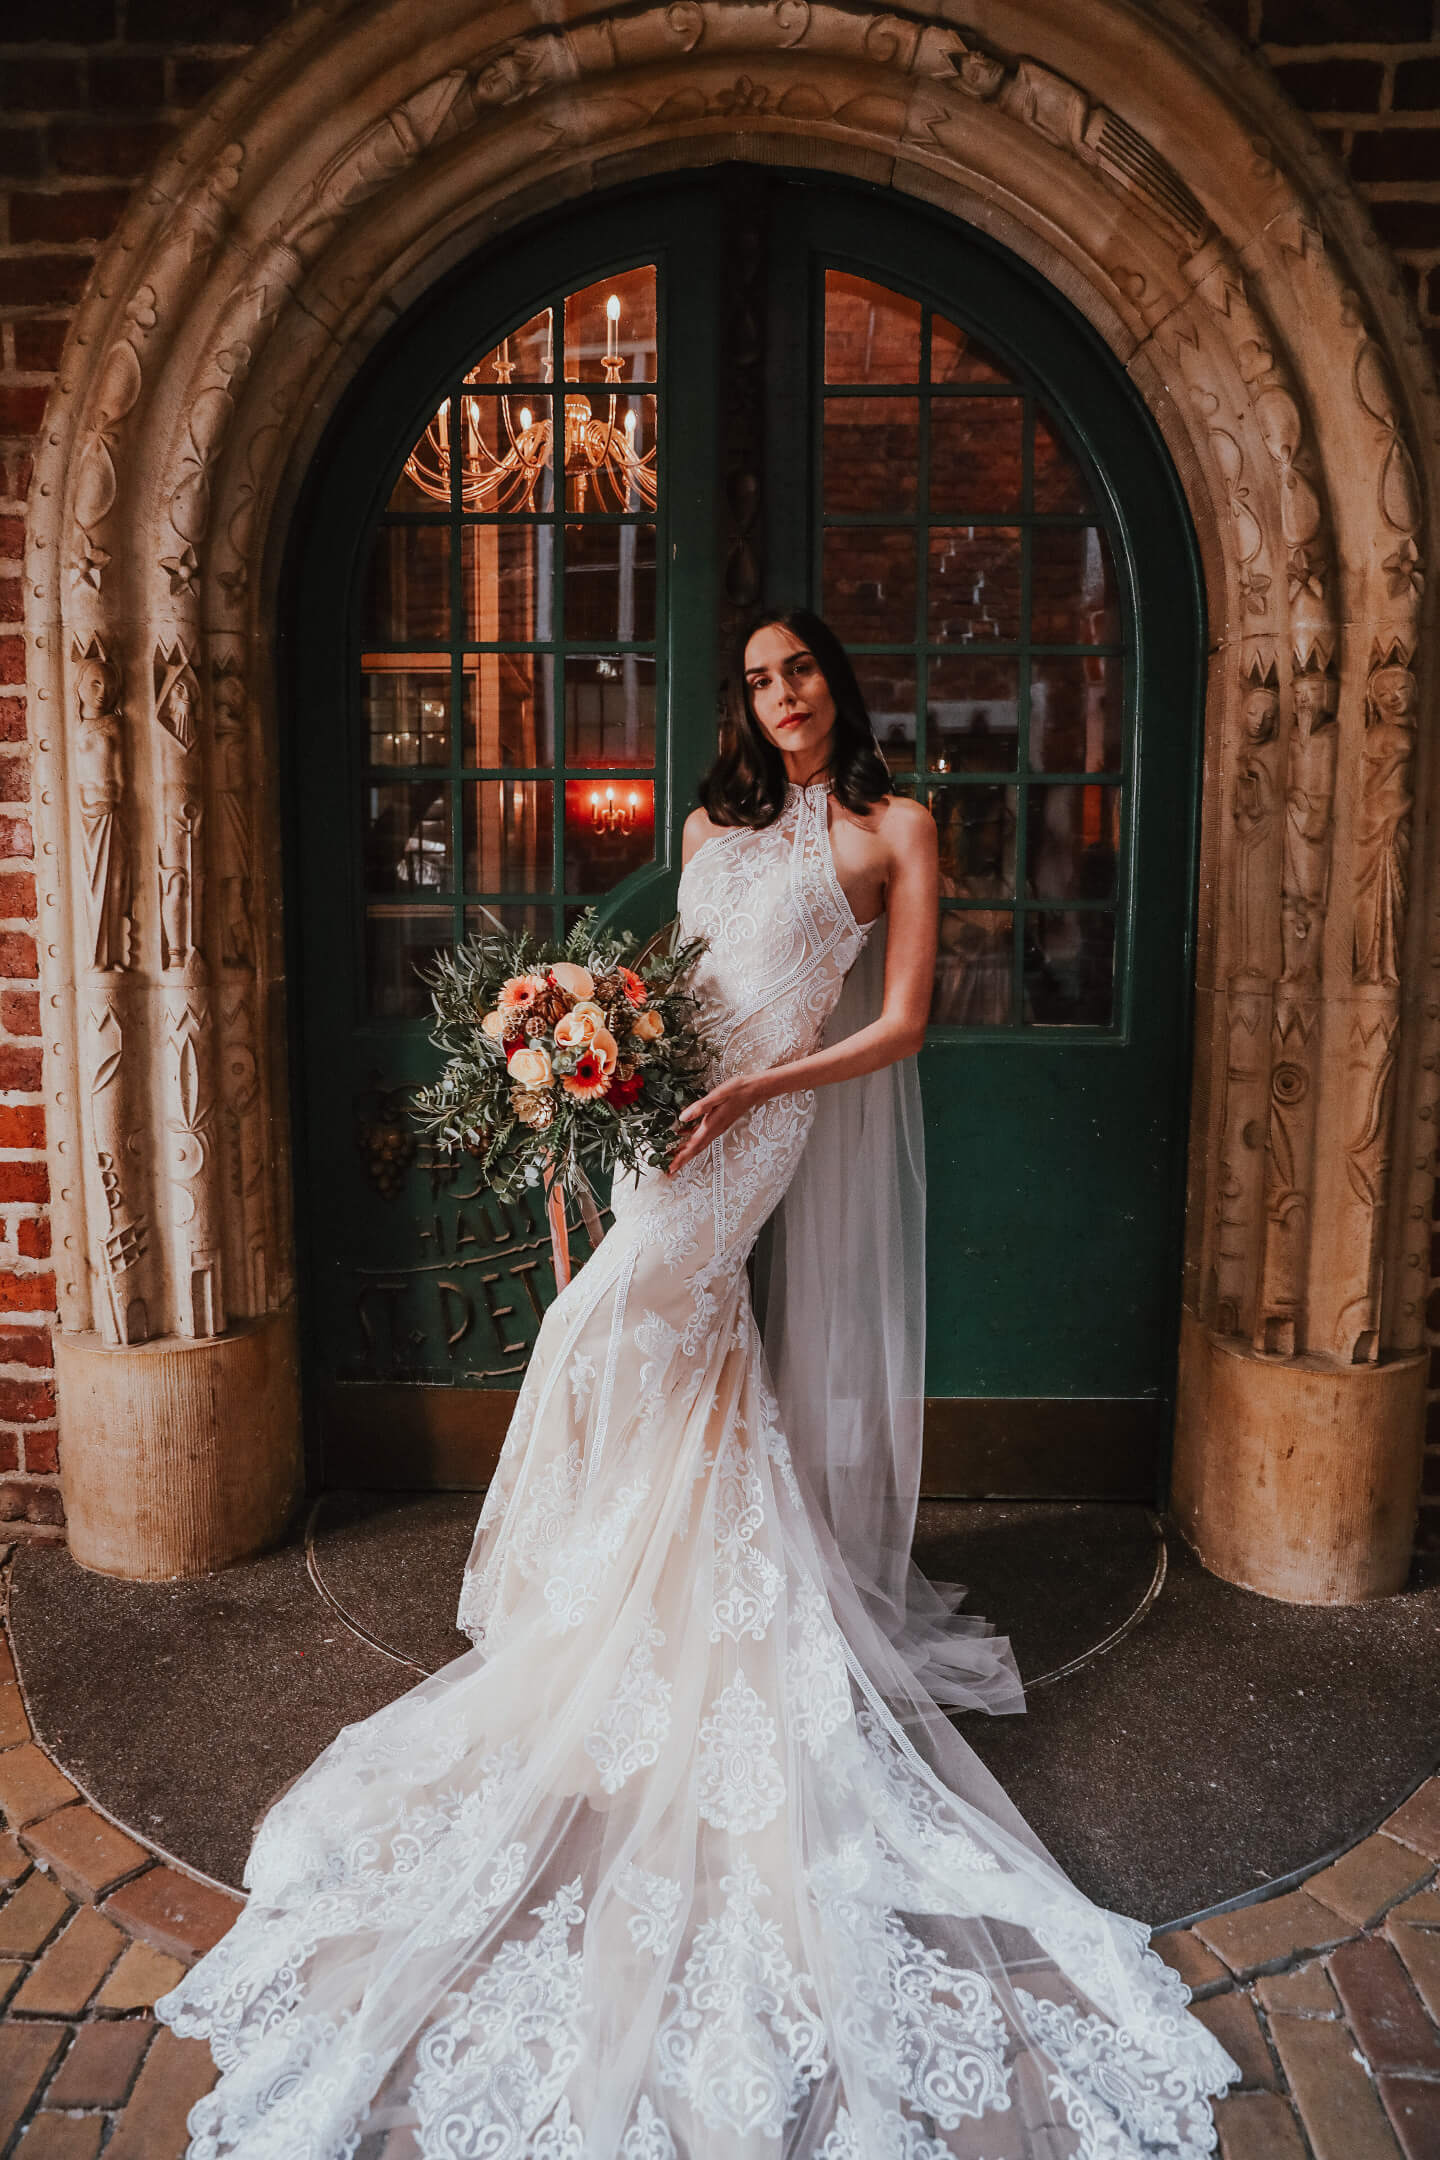 portrait photo of the bride with long white dress and salmon-colored weddingflowers